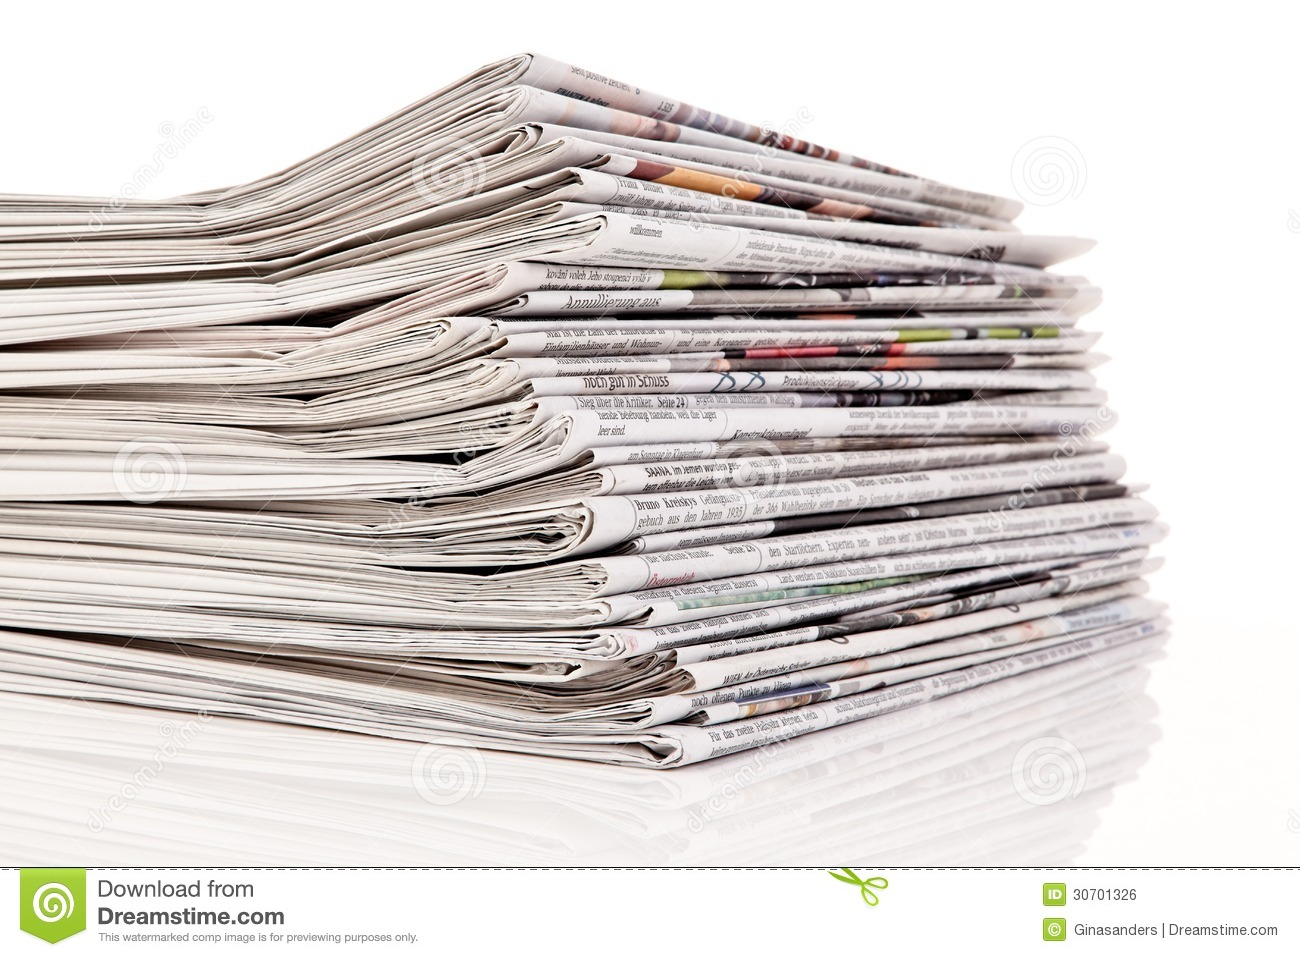 stacks of old newspapers and magazines stock photo 30701326 - megapixl